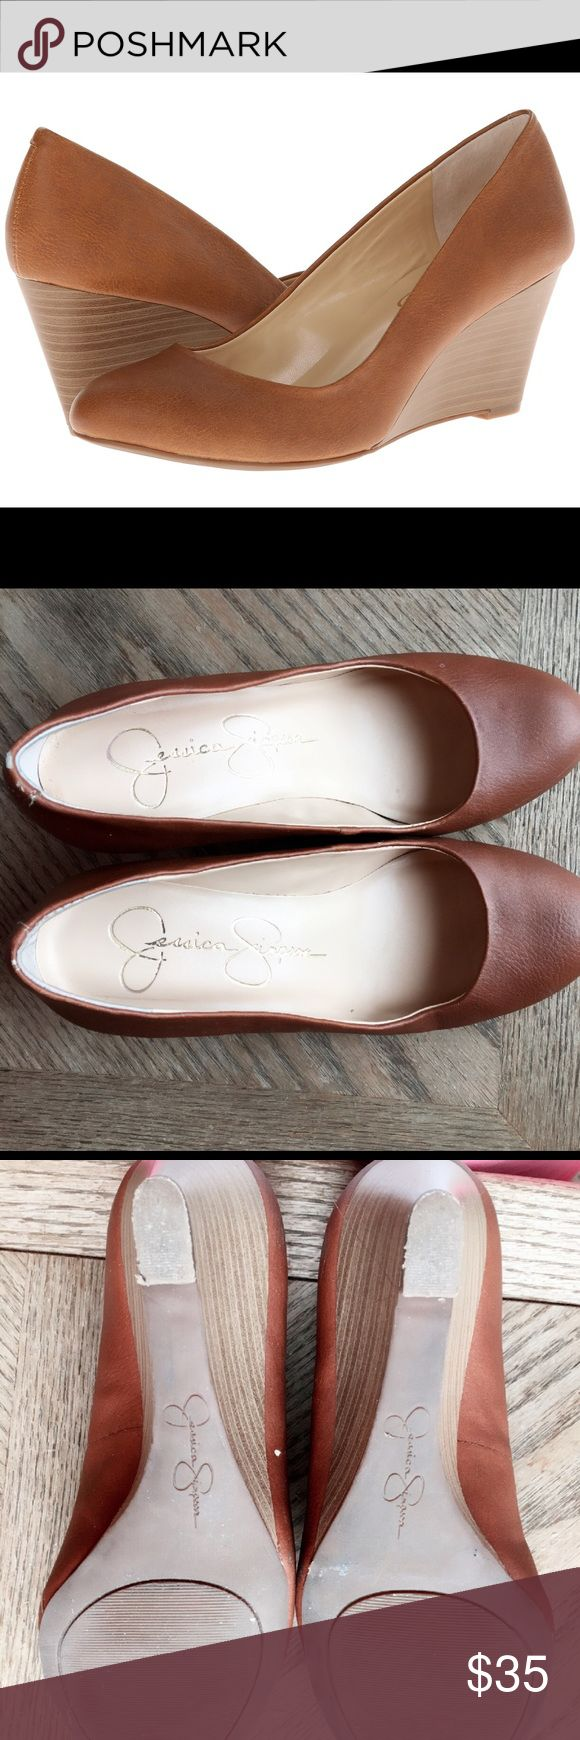 Jessica simpson wedge pump:) in great condition:) Very great condition...:) Jessica Simpson Shoes Wedges